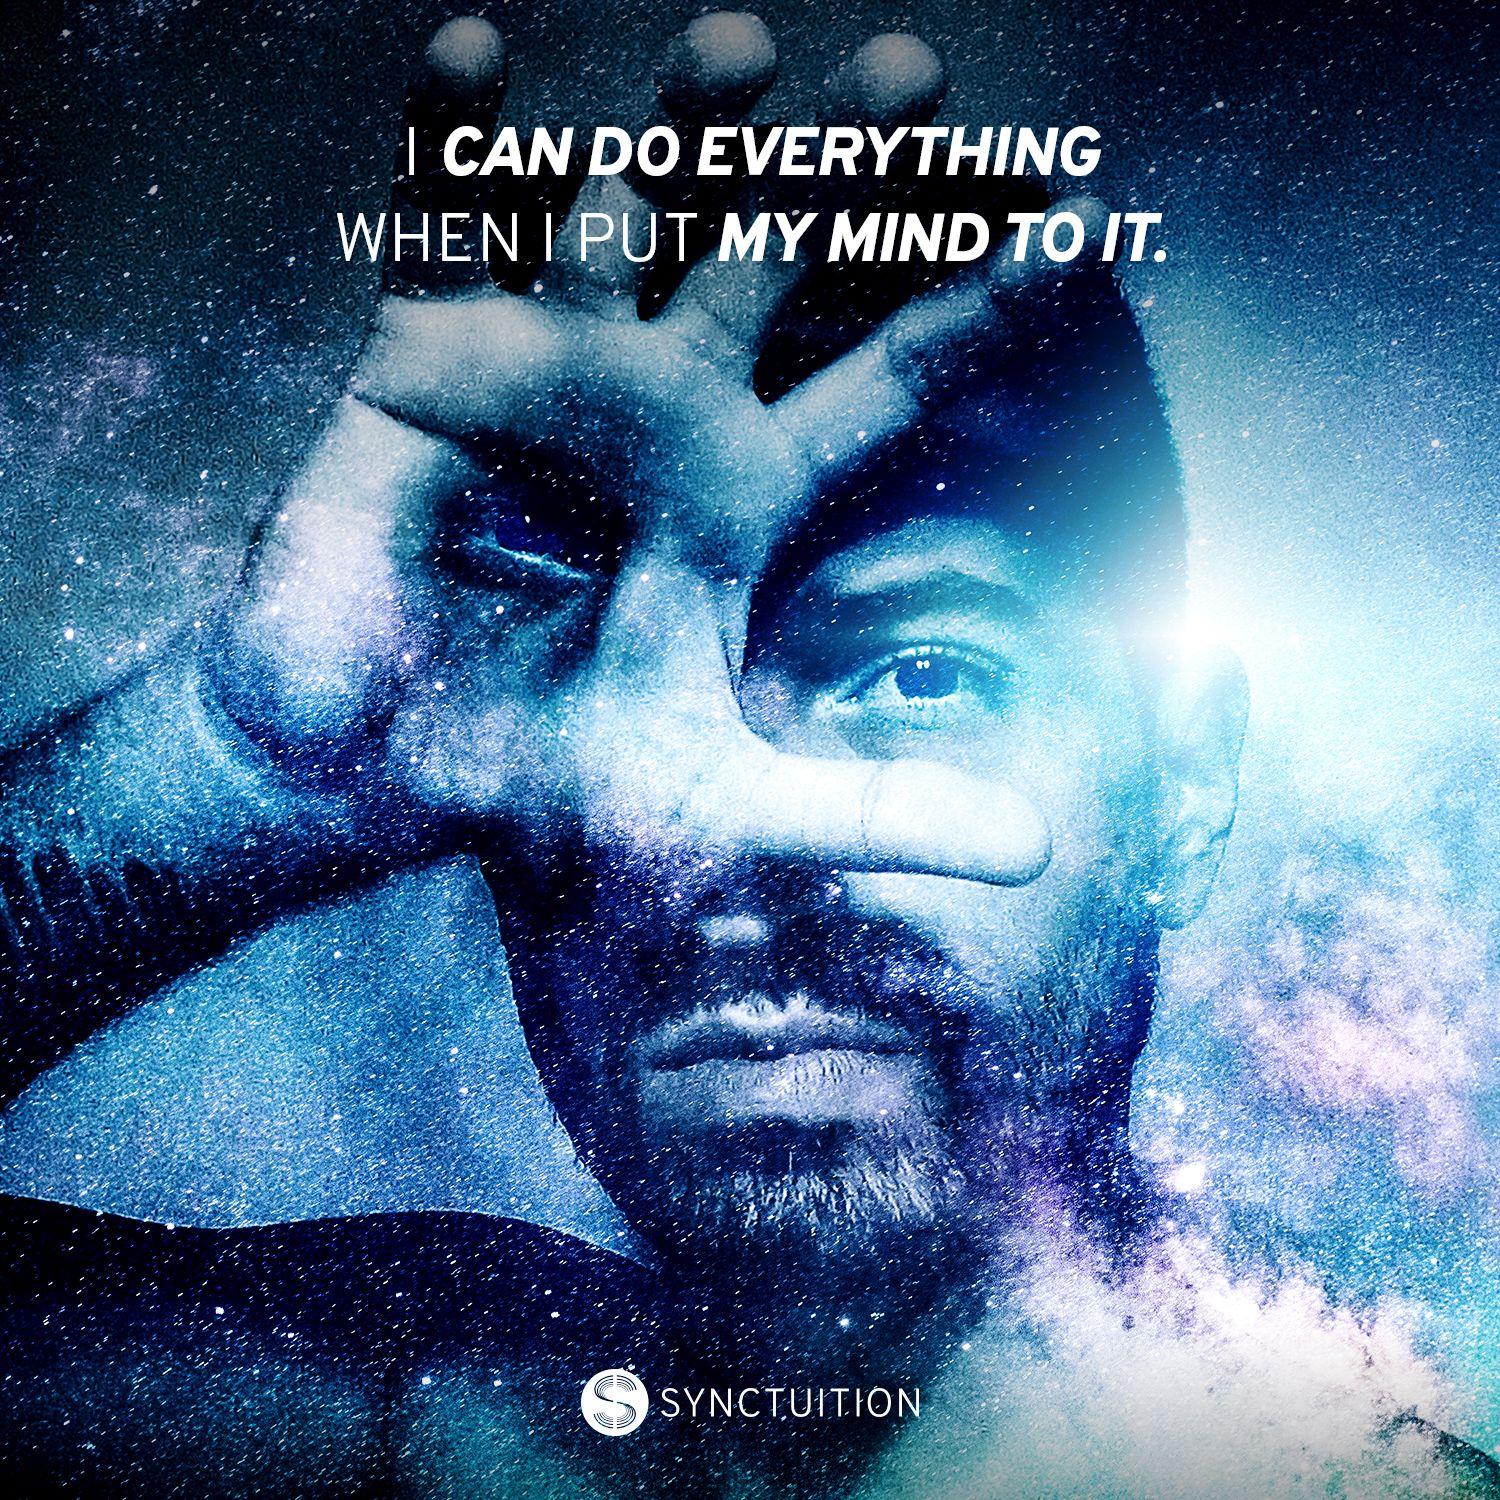 A man with a third eye on his hand with the quote